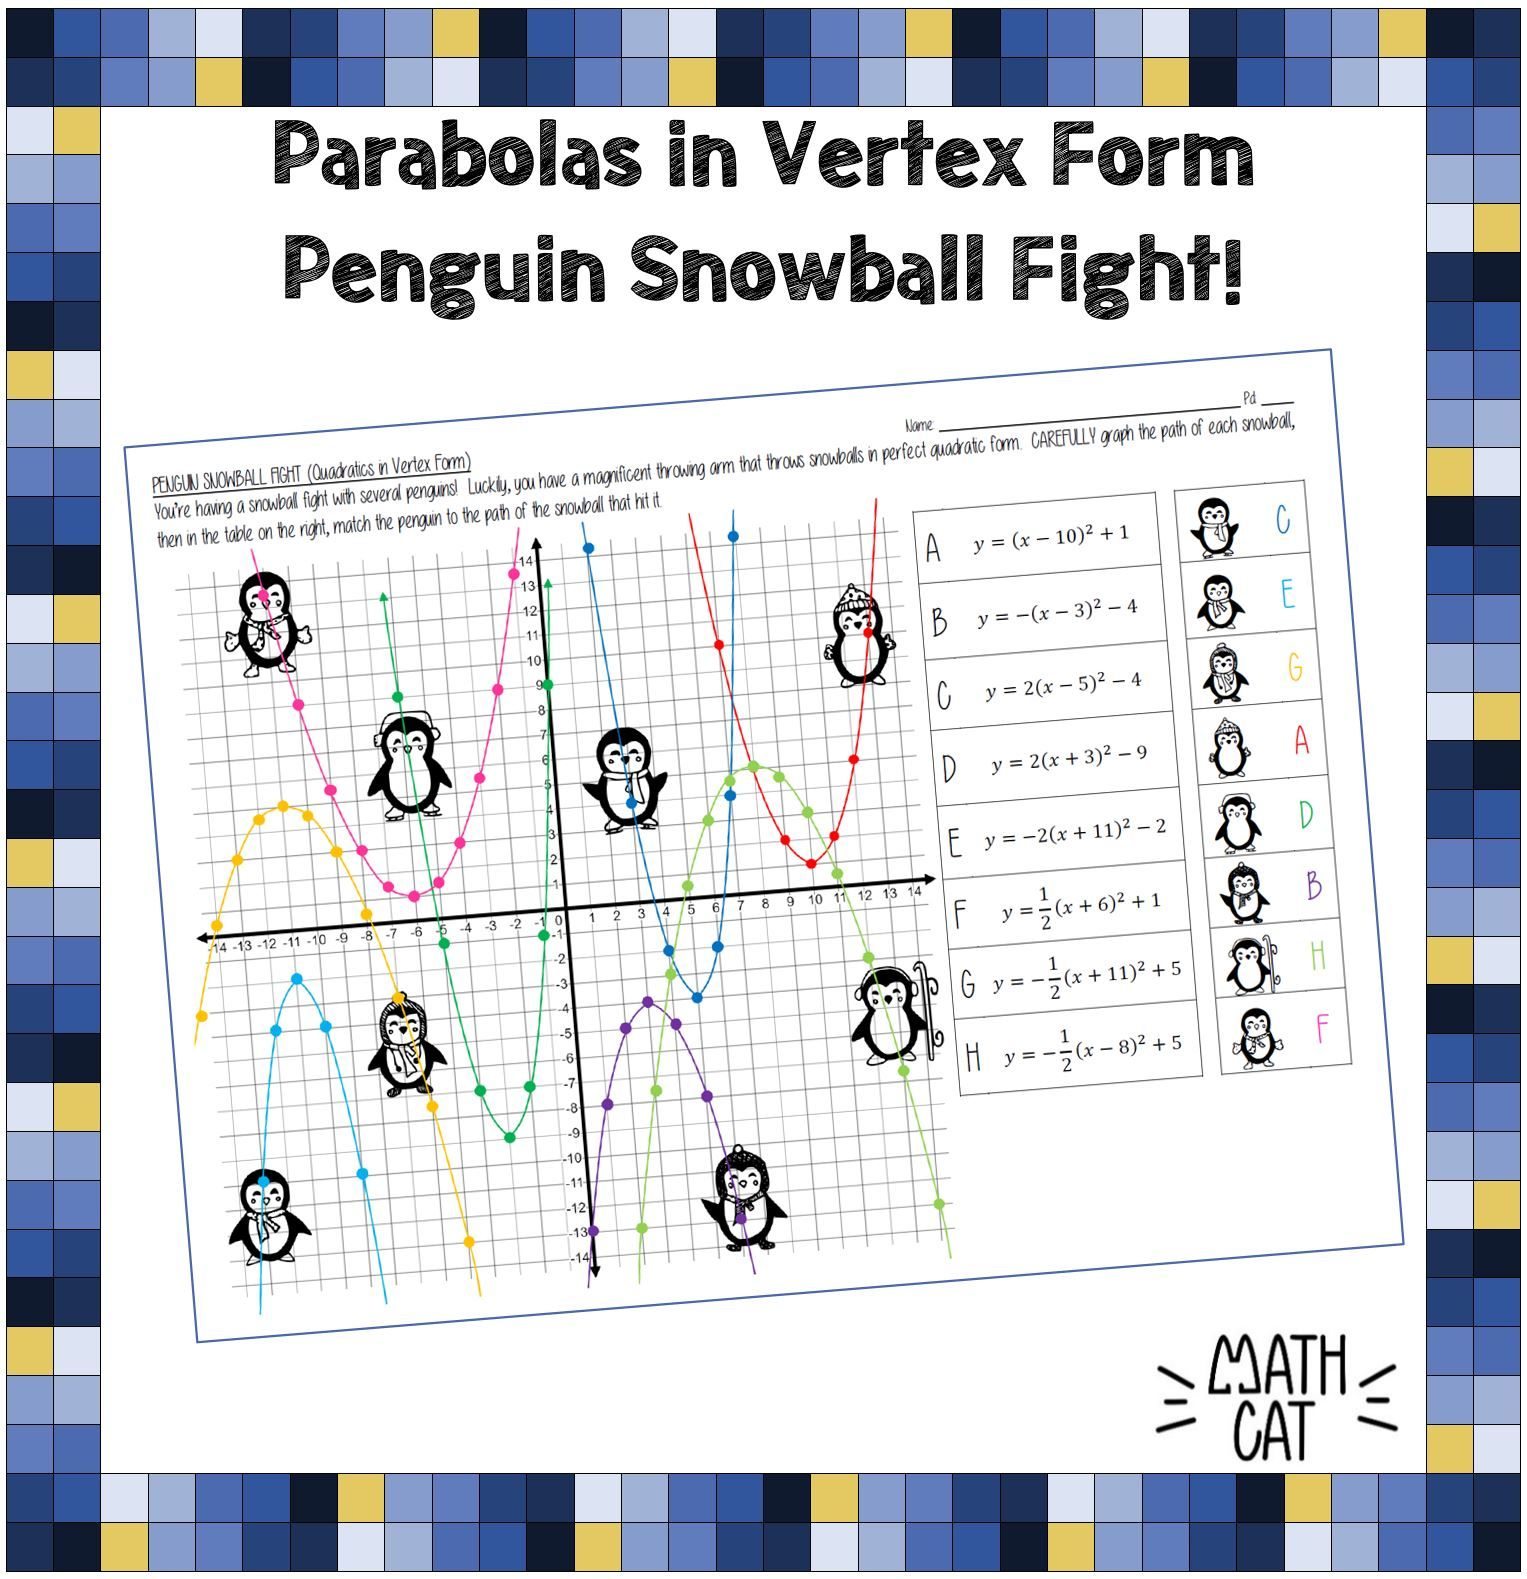 small resolution of Penguin Snowball Fight! Graphing Parabolas in Vertex Form   Graphing  parabolas